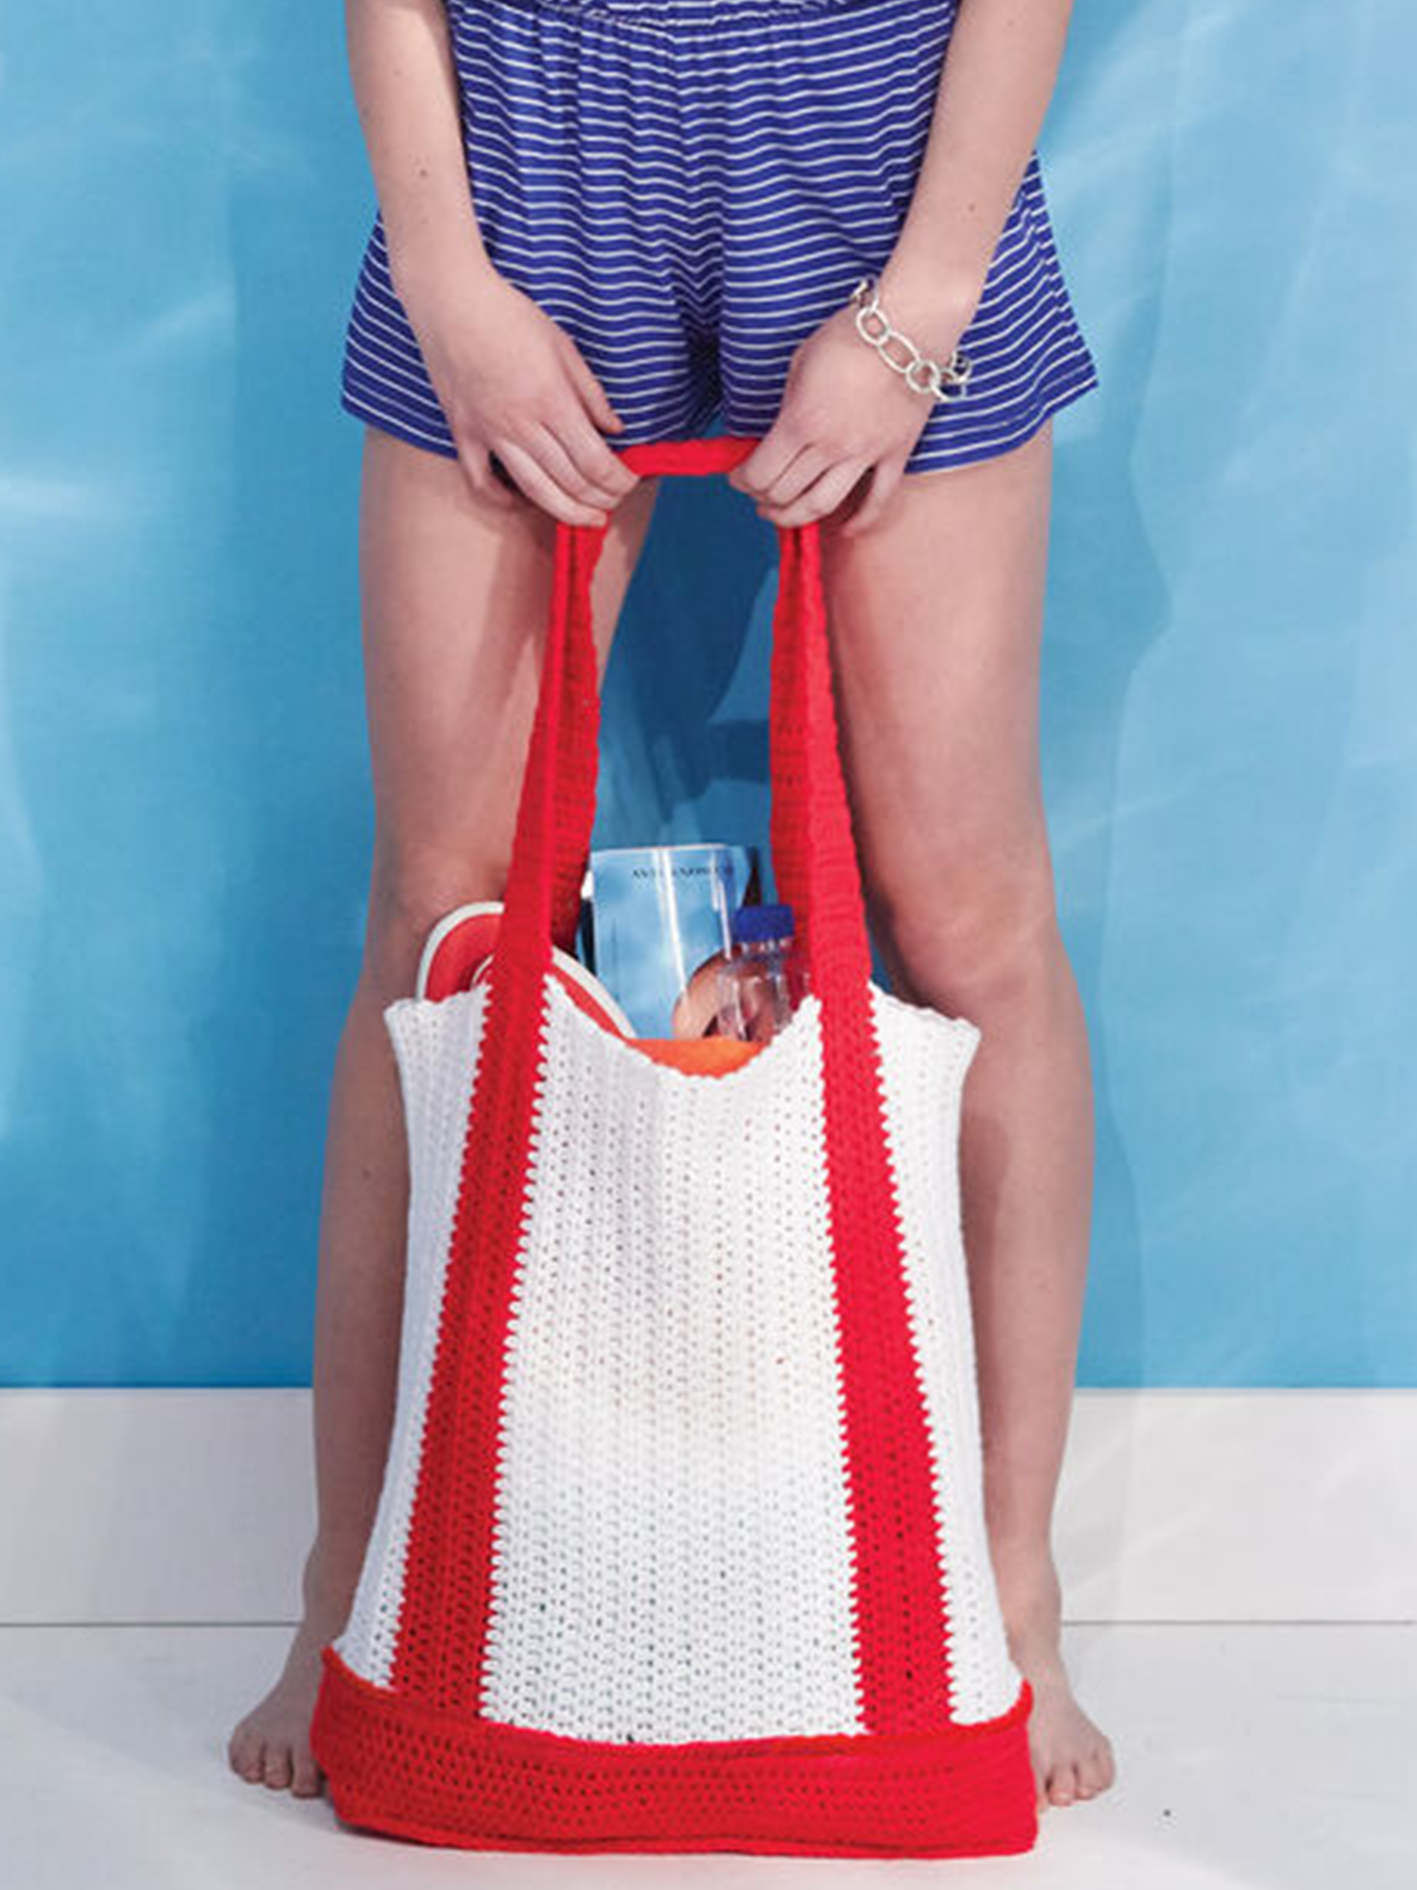 crochet-work-beach-bag-all-that-should-be-necessary-in-the-bag-this-list-is-a-must-see-new-2019